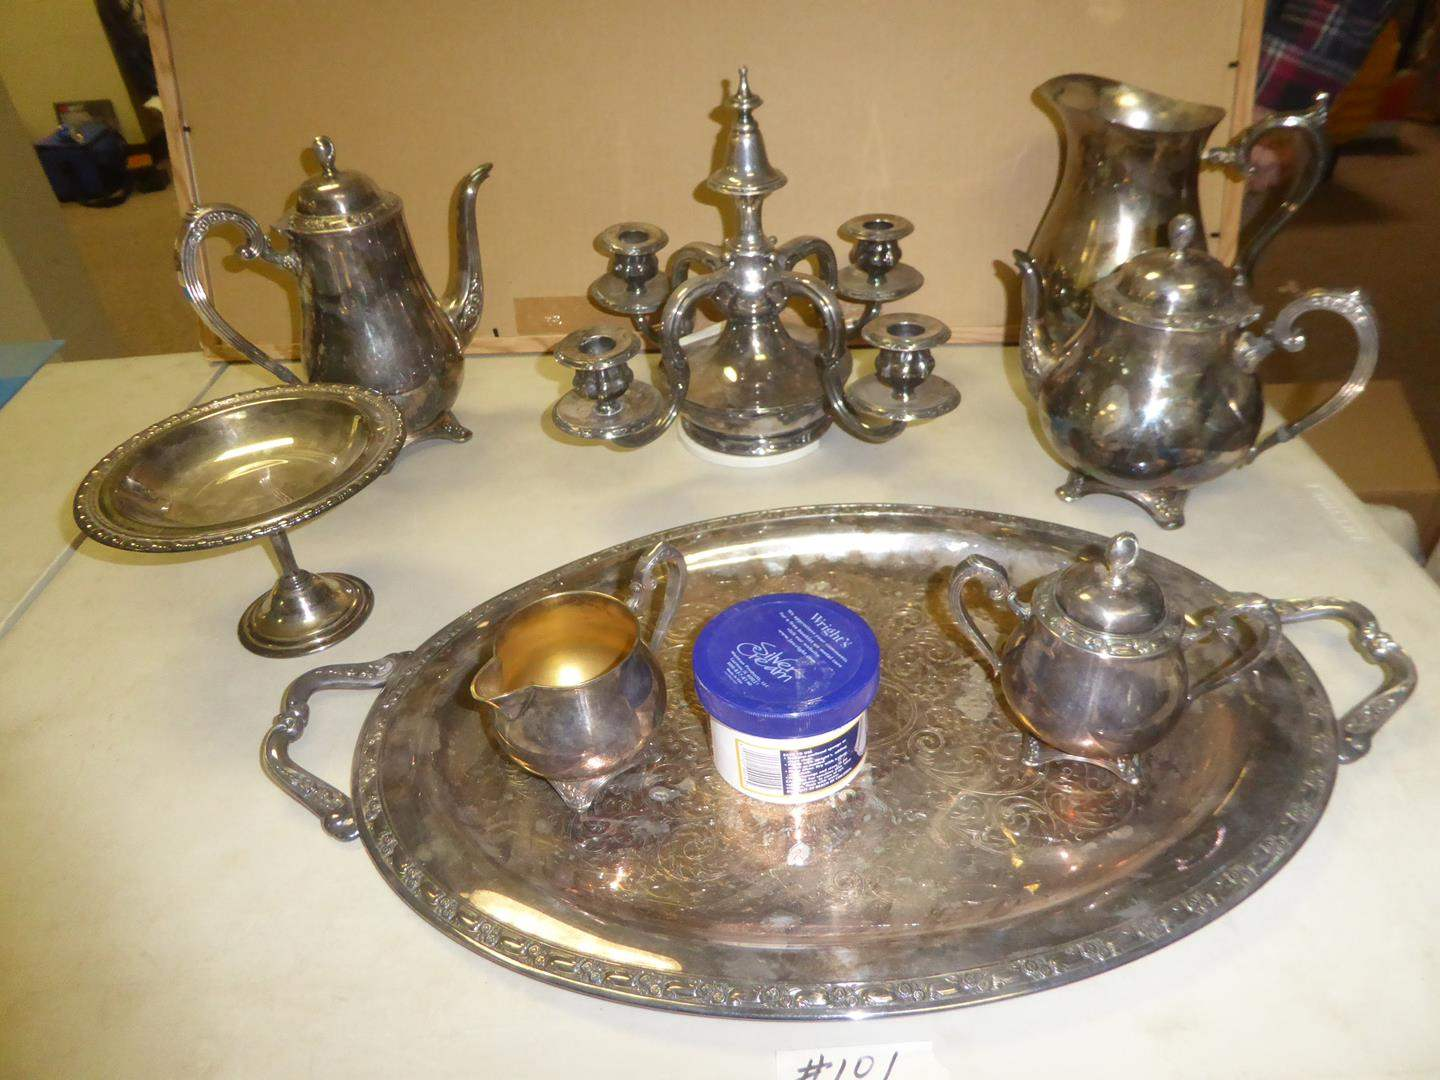 Lot # 101 - Vintage Silver Plate Serving Pieces & Antique Candelabra (main image)